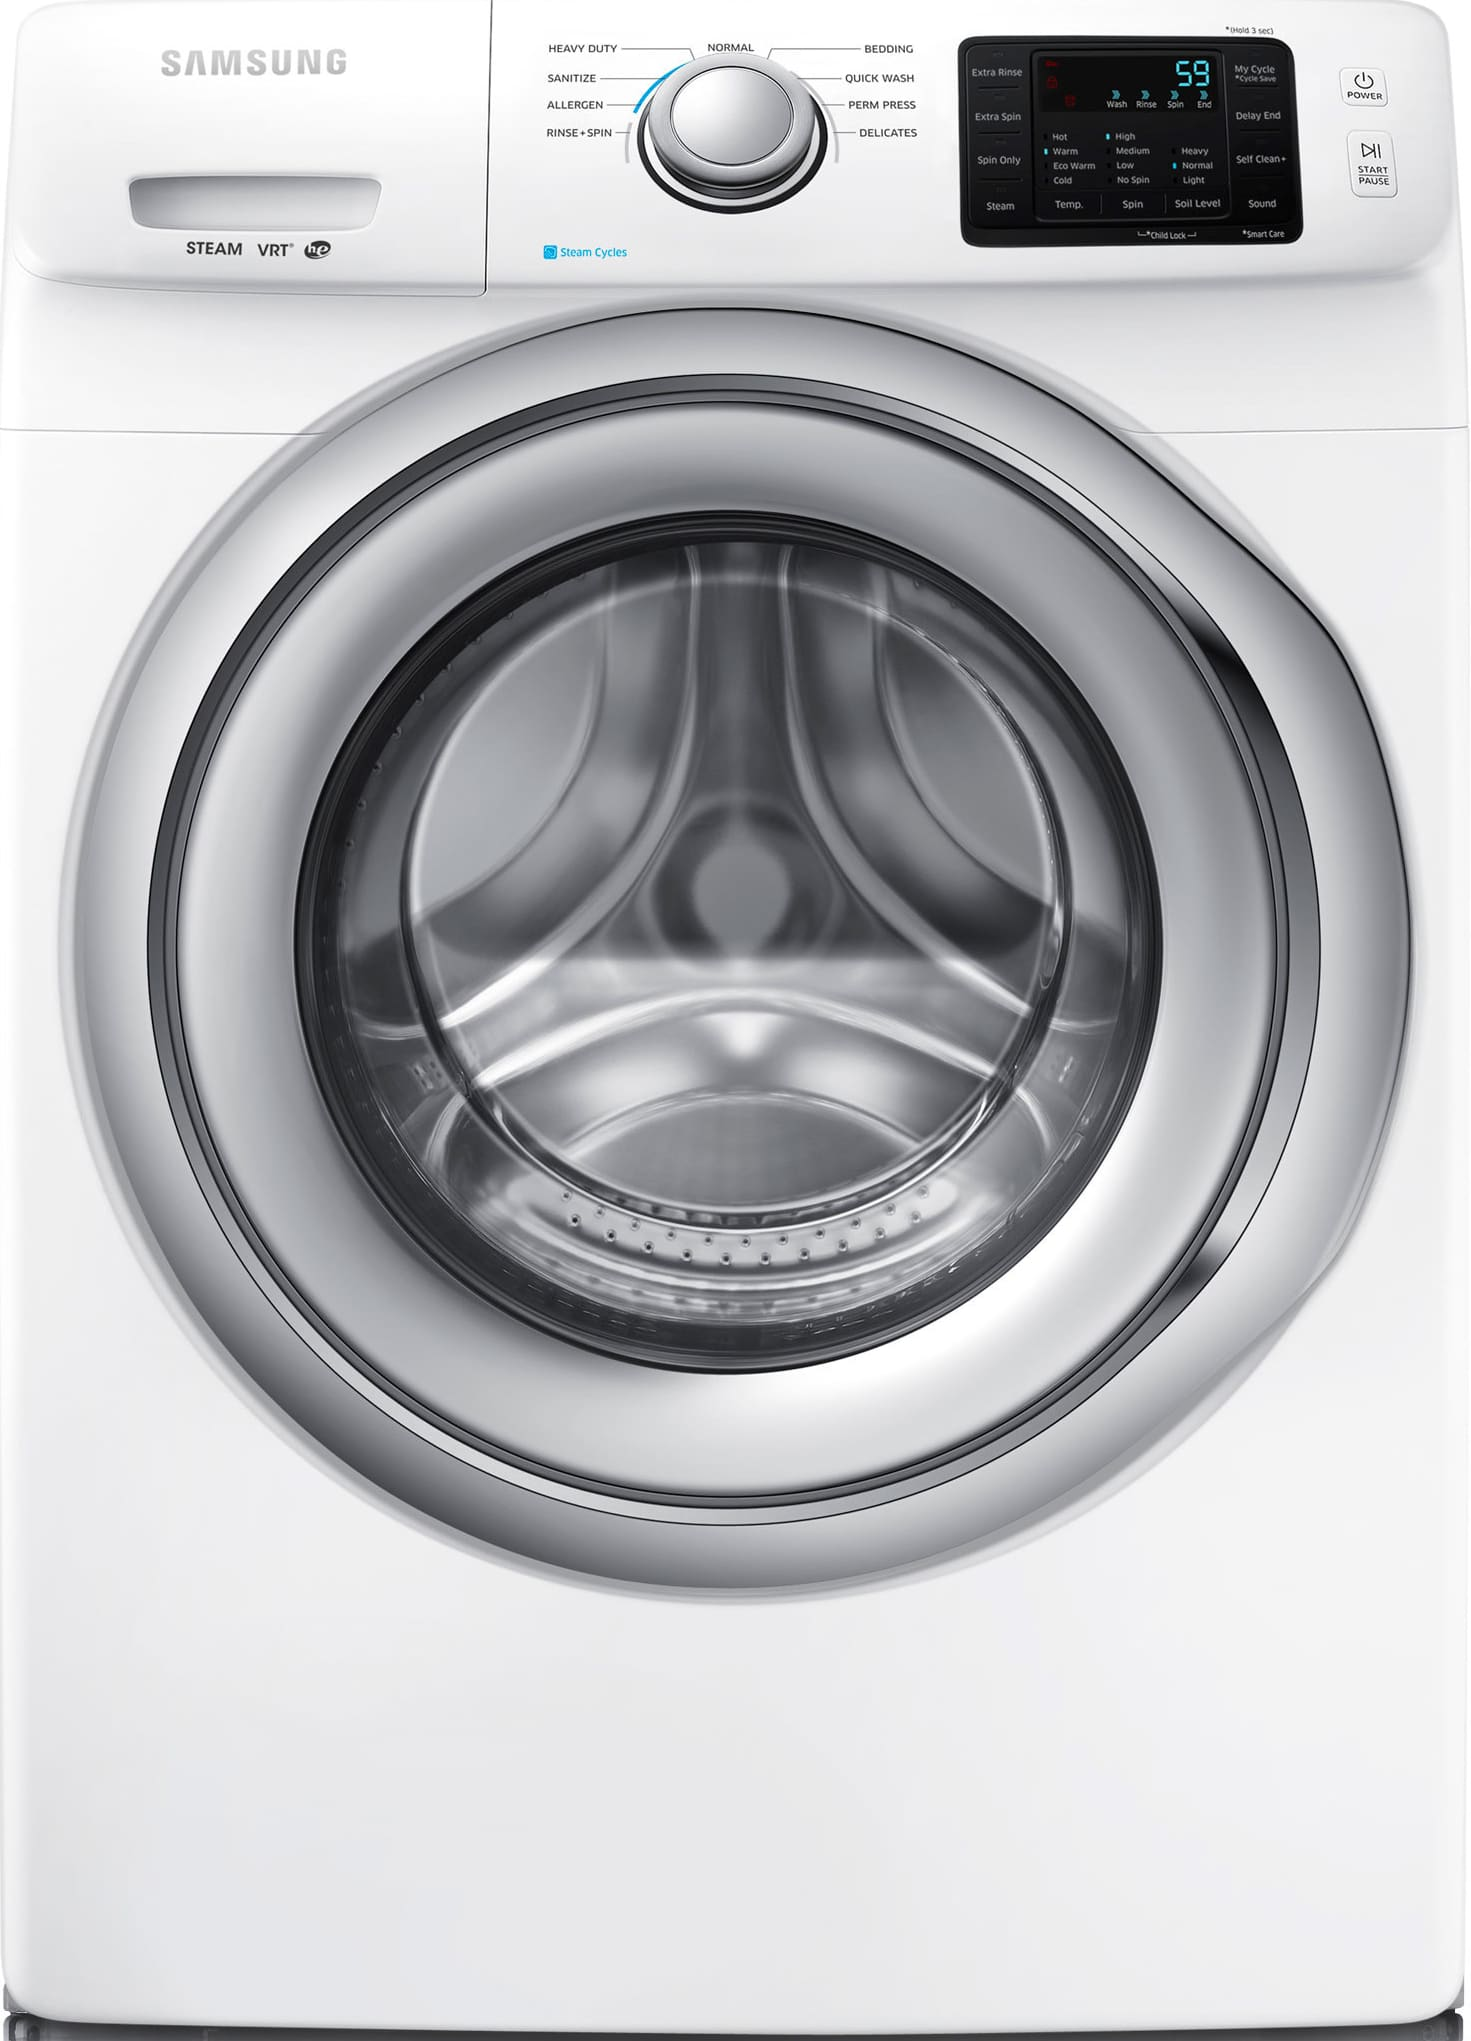 Samsung wf42h5200aw 27 inch 42 cu ft front load washer with samsung wf42h5200aw 27 inch 42 cu ft front load washer with steam wash nsf certified self clean allergen cycle sanitize cycle 9 wash cycles biocorpaavc Images